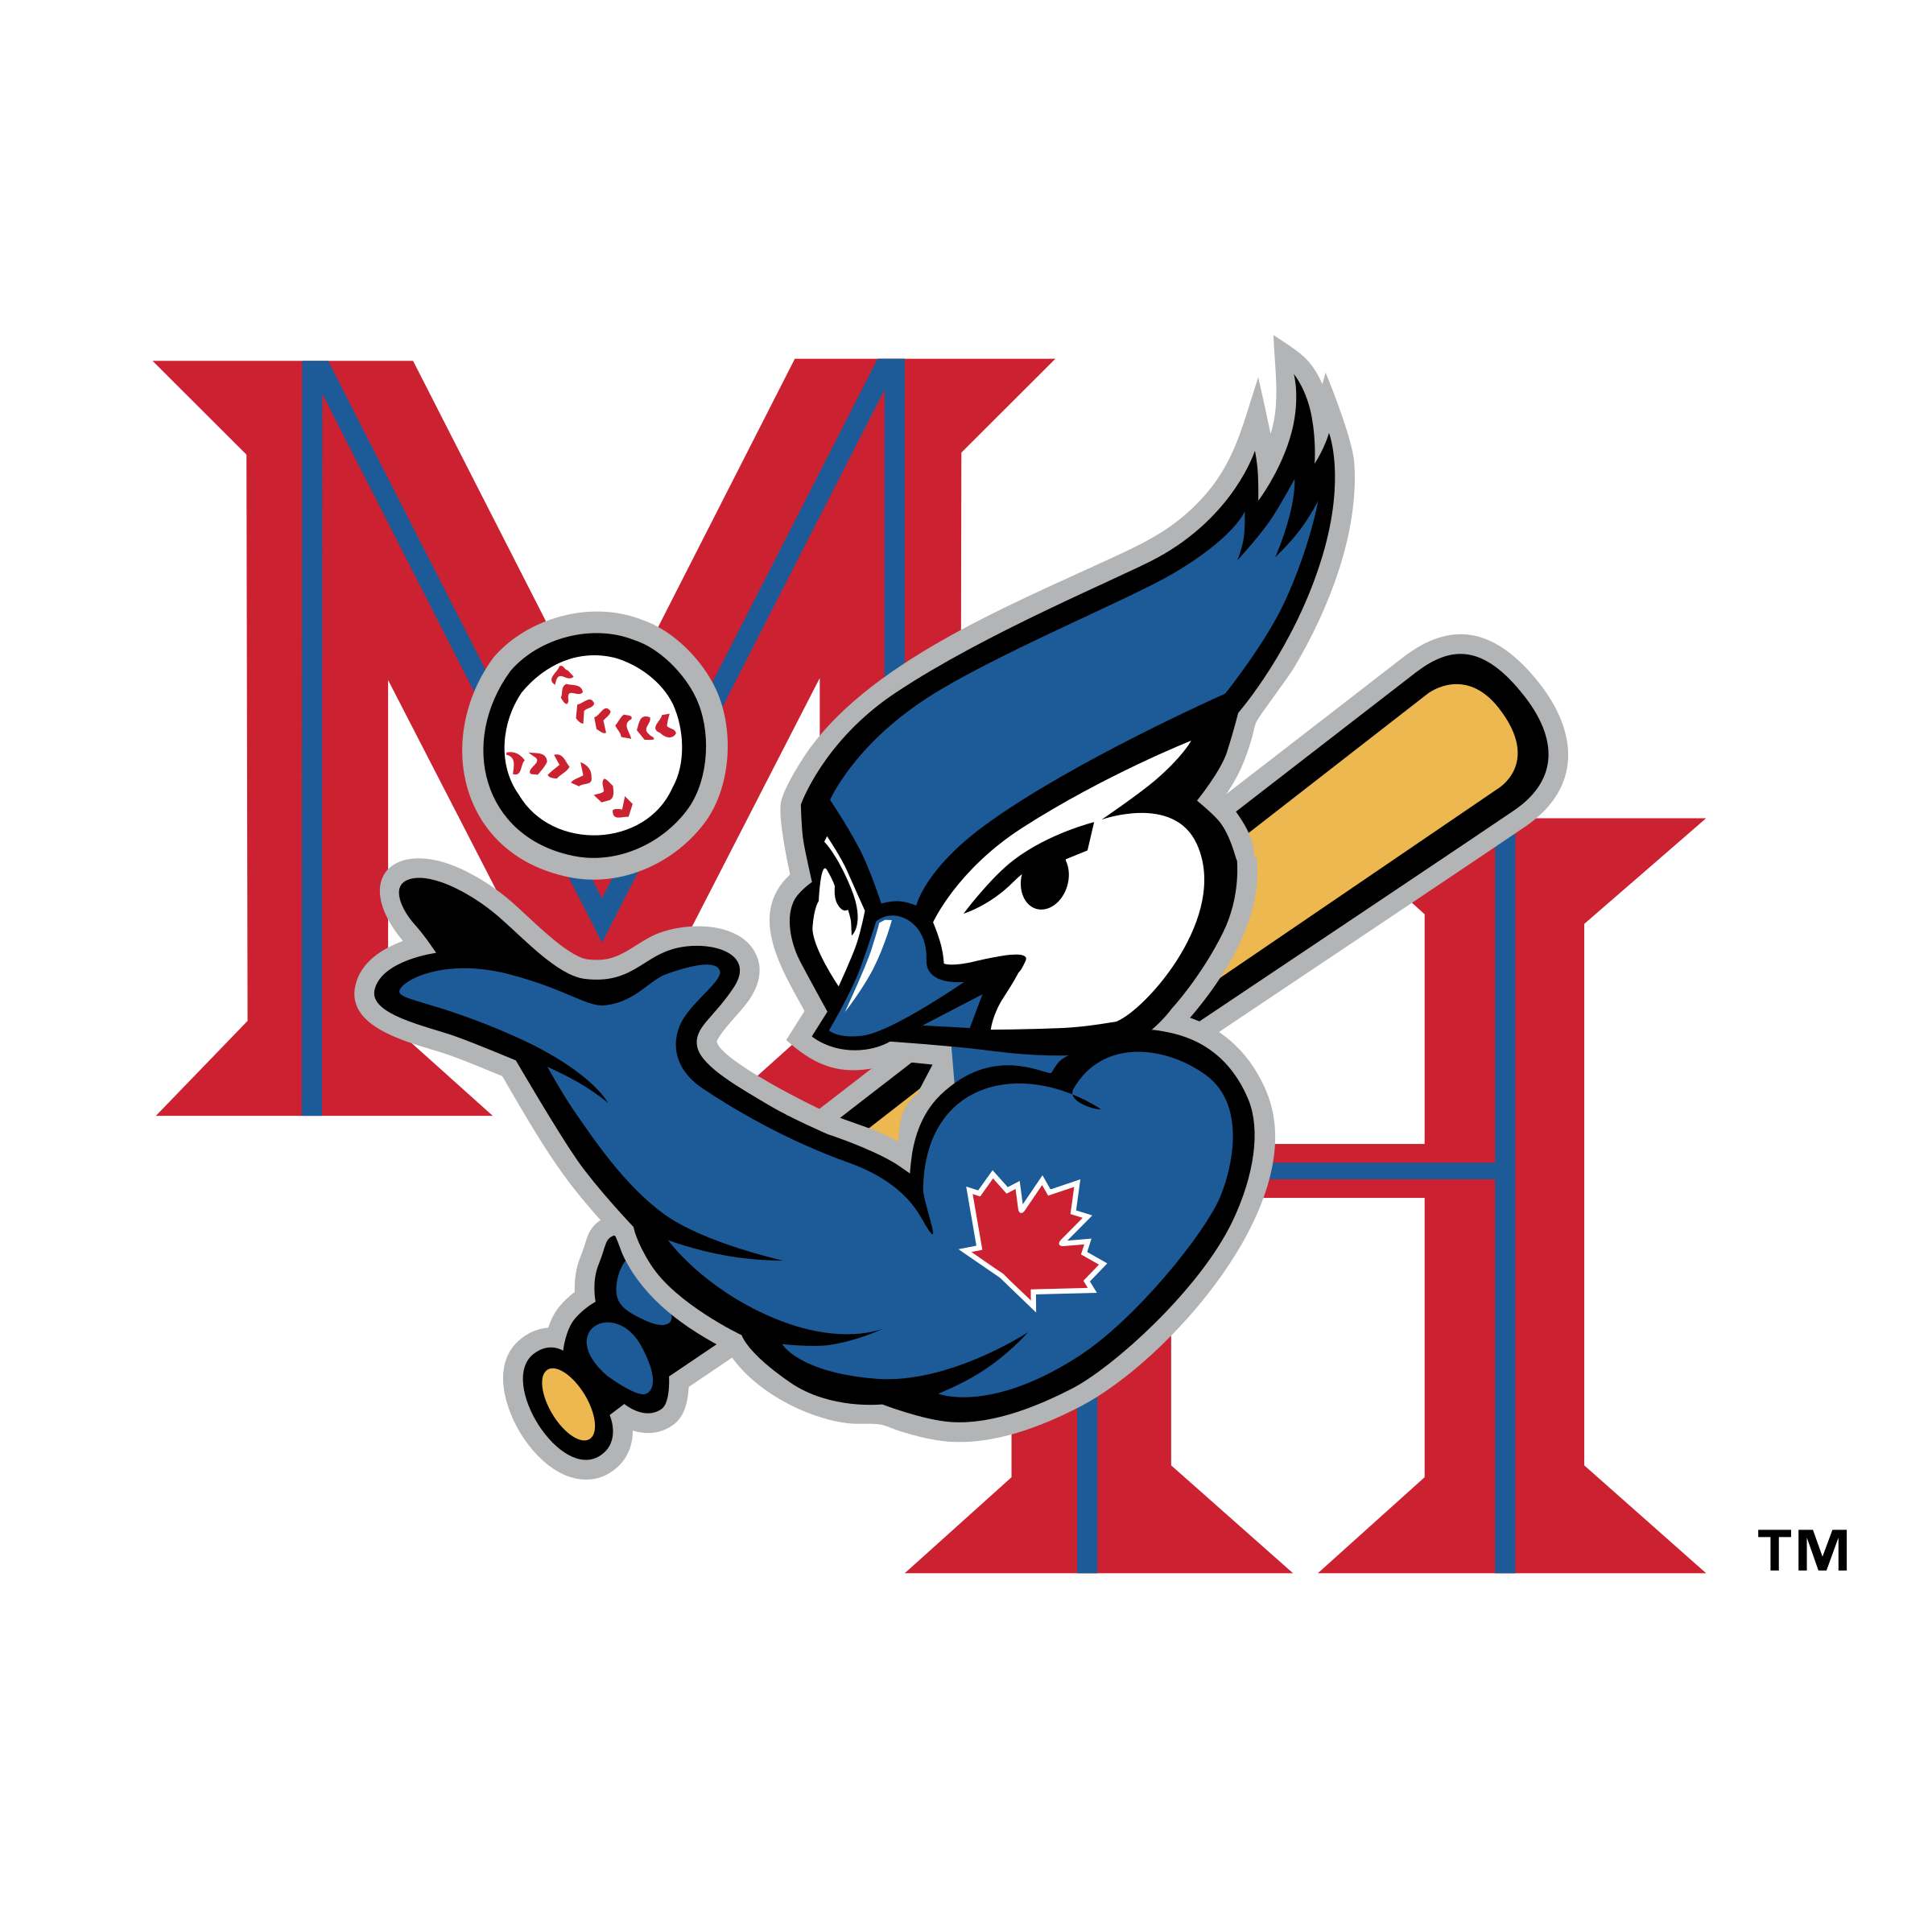 Medicine vector cartoon. Hat blue jays logo